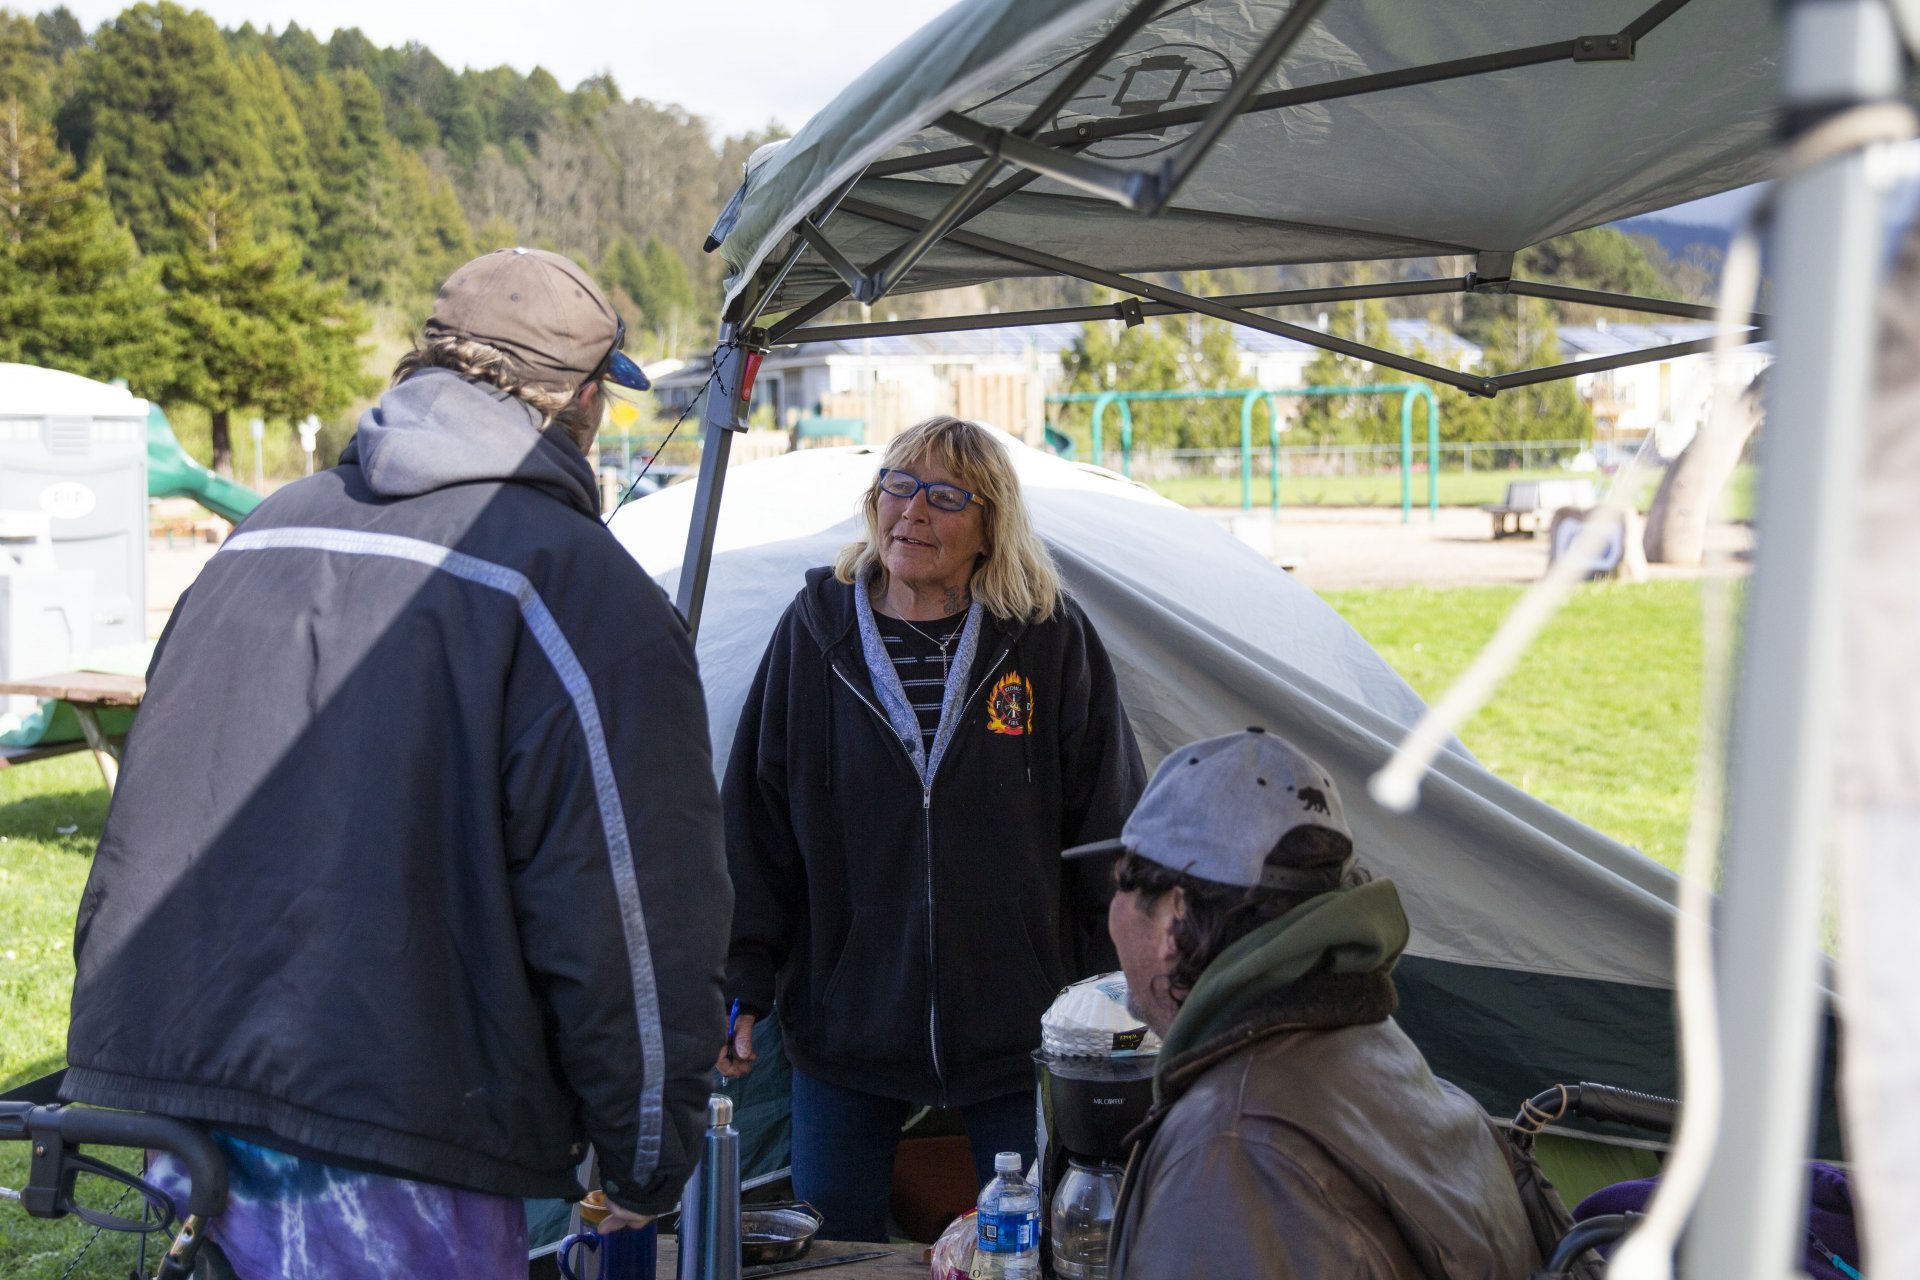 Jim Kelly, Crystal Fisher and David Love talk with each other at their makeshift camp outside the Arcata Community Center during the COVID-19 pandemic on March 6. | Photo by Thomas Lal